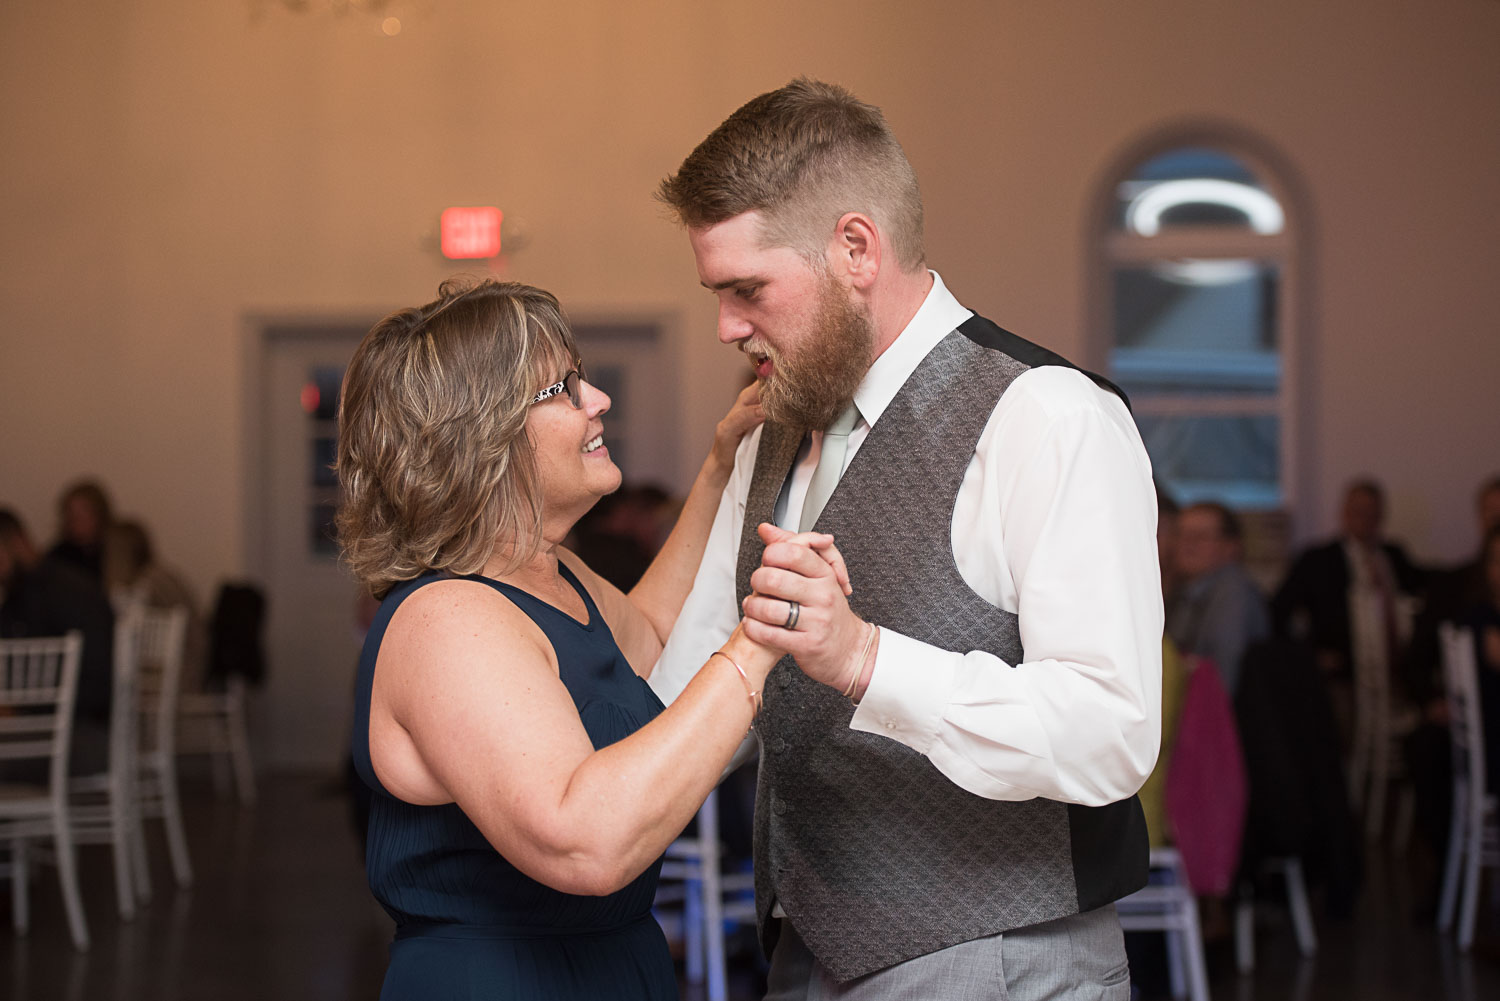 105 mother of the groom and groom dance.jpg